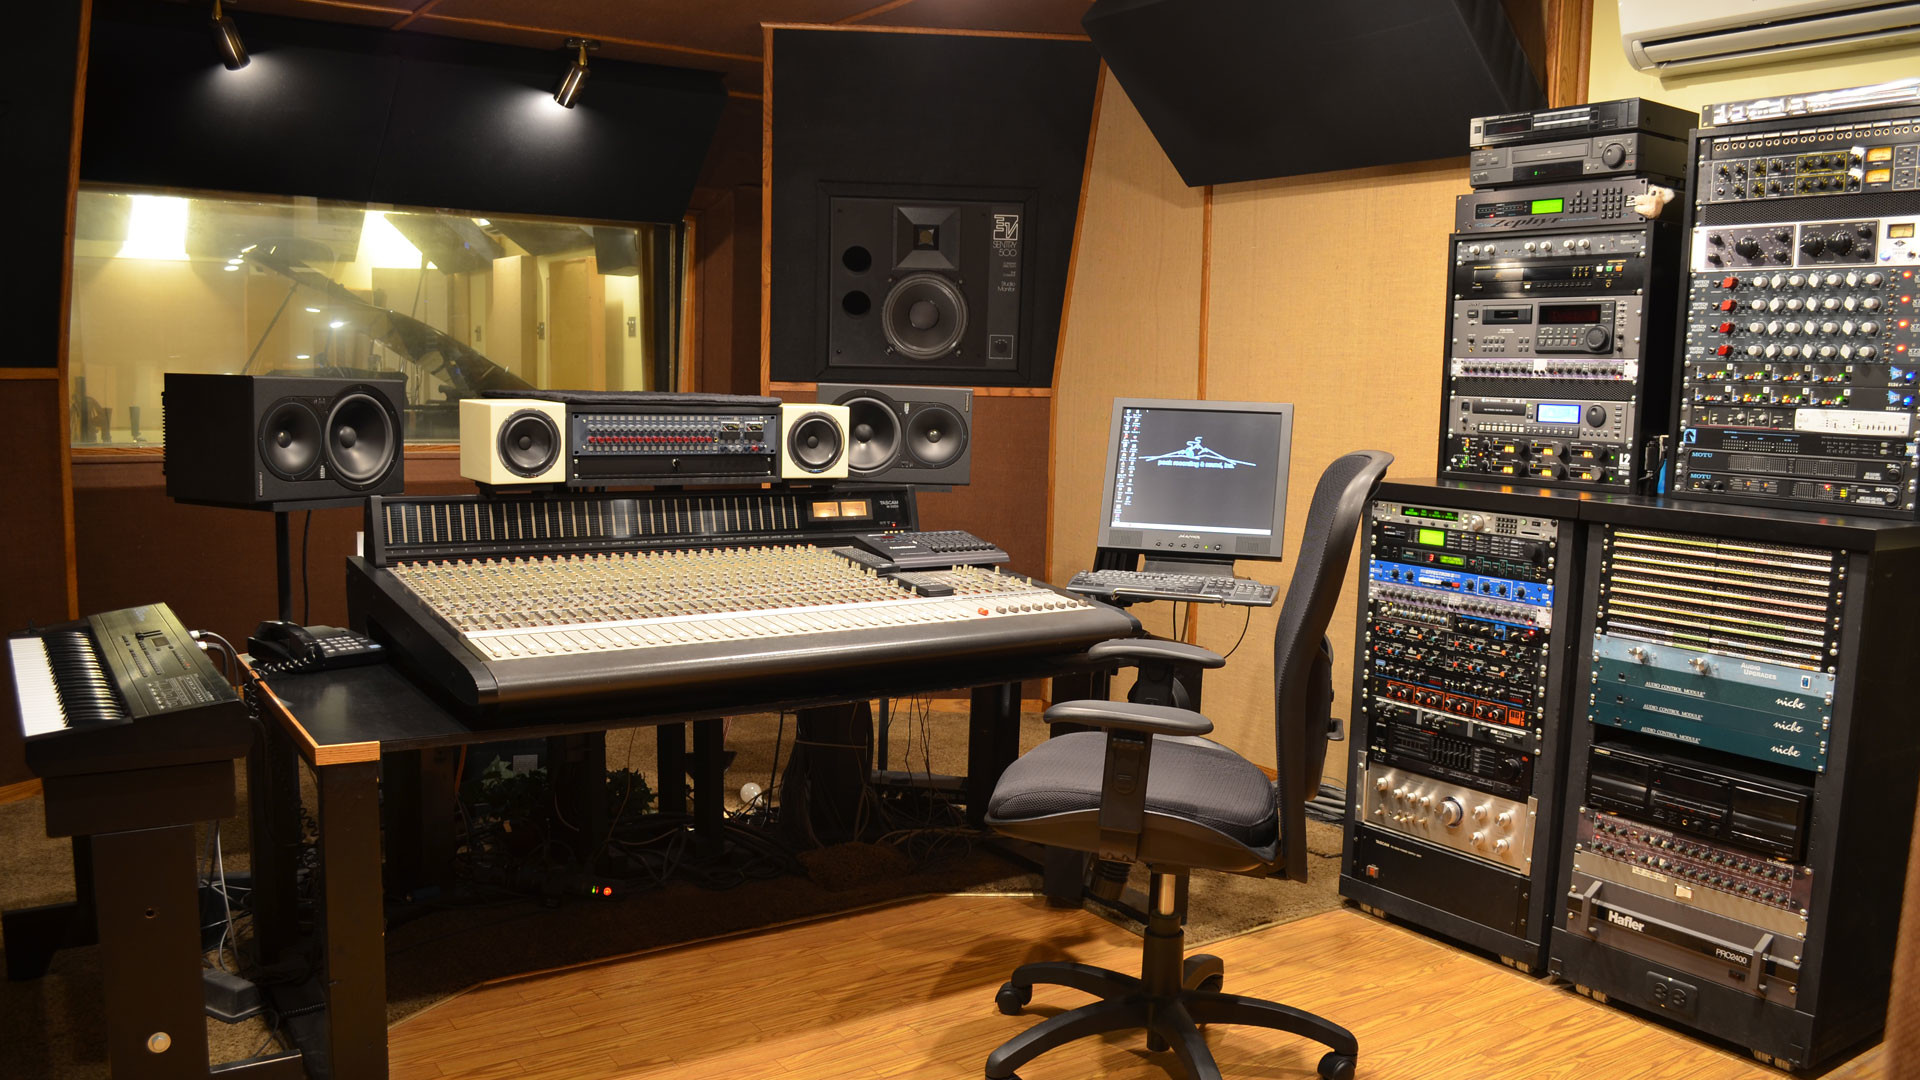 Recording Studio Iphone Wallpaper Music Recording Studio Hd Wallpaper 74 Images